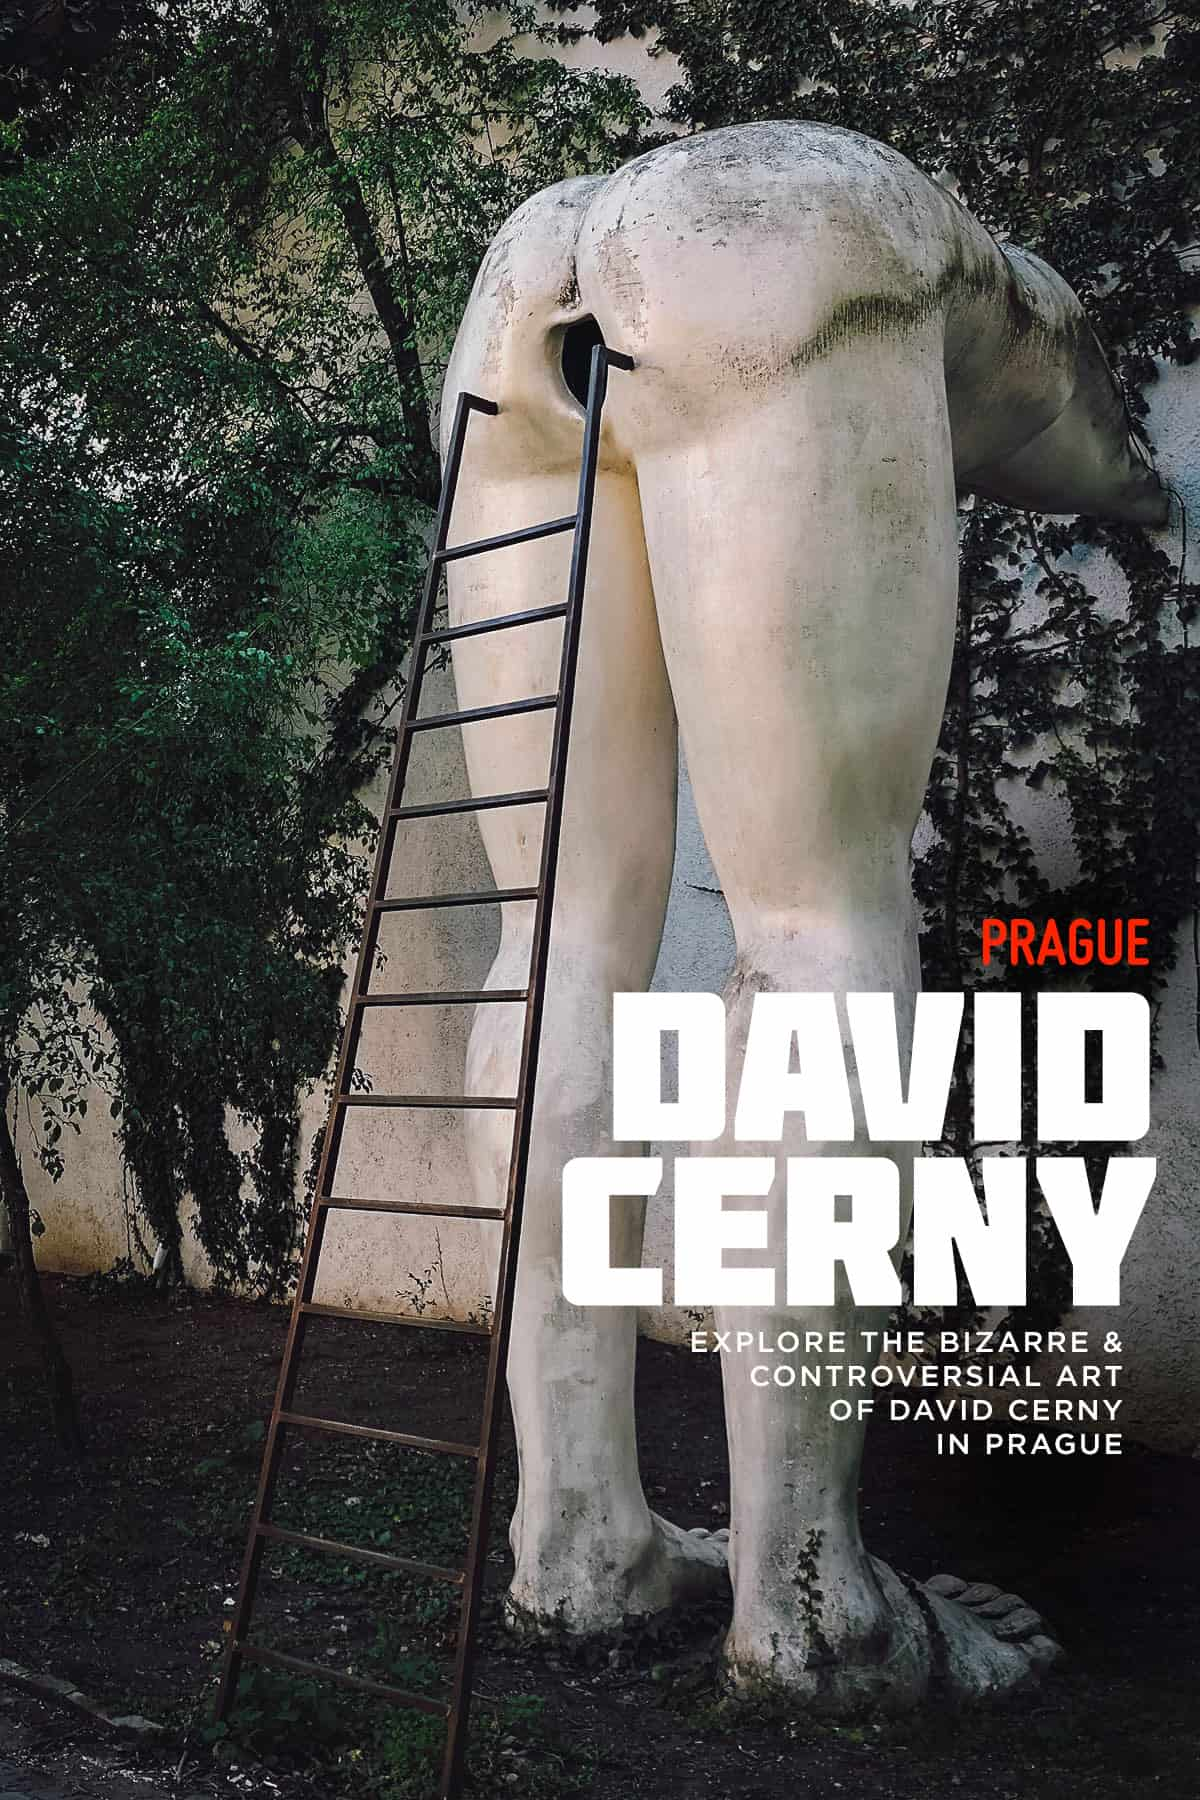 David Cerny sculpture in Prague, Czech Republic